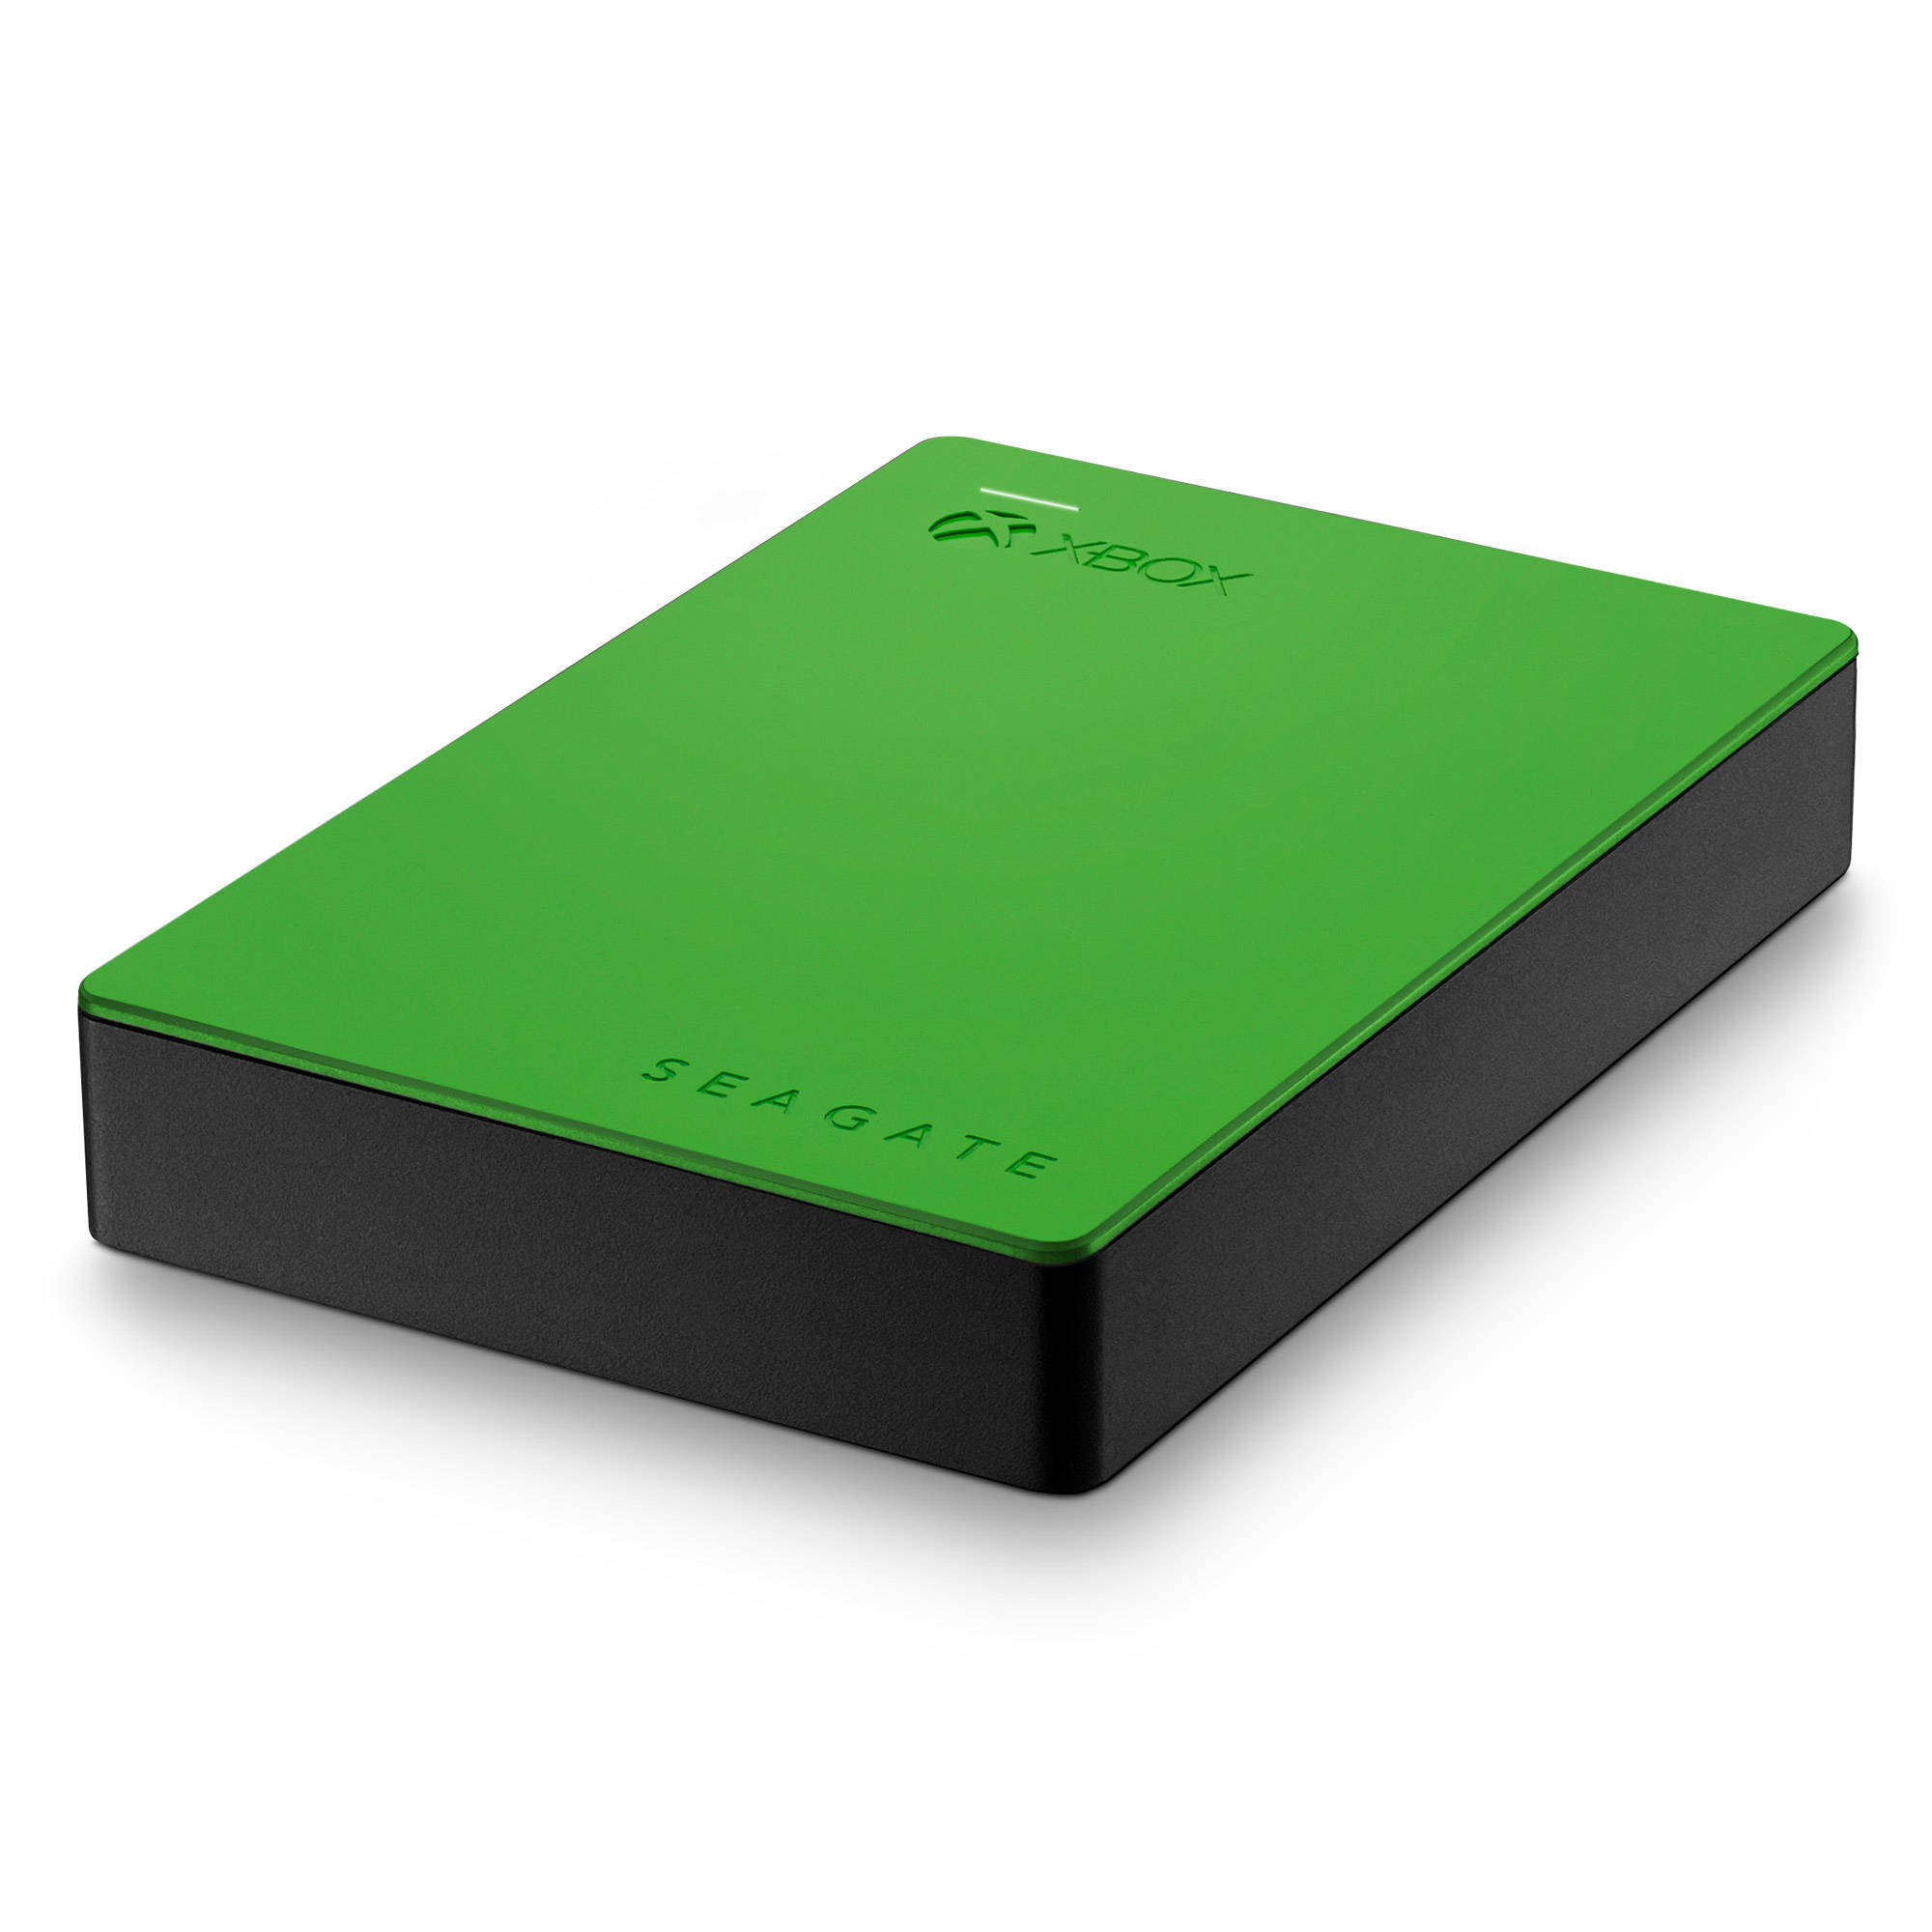 Expansion USB 3.0 External Hard Drive 3TB for Xbox One ...